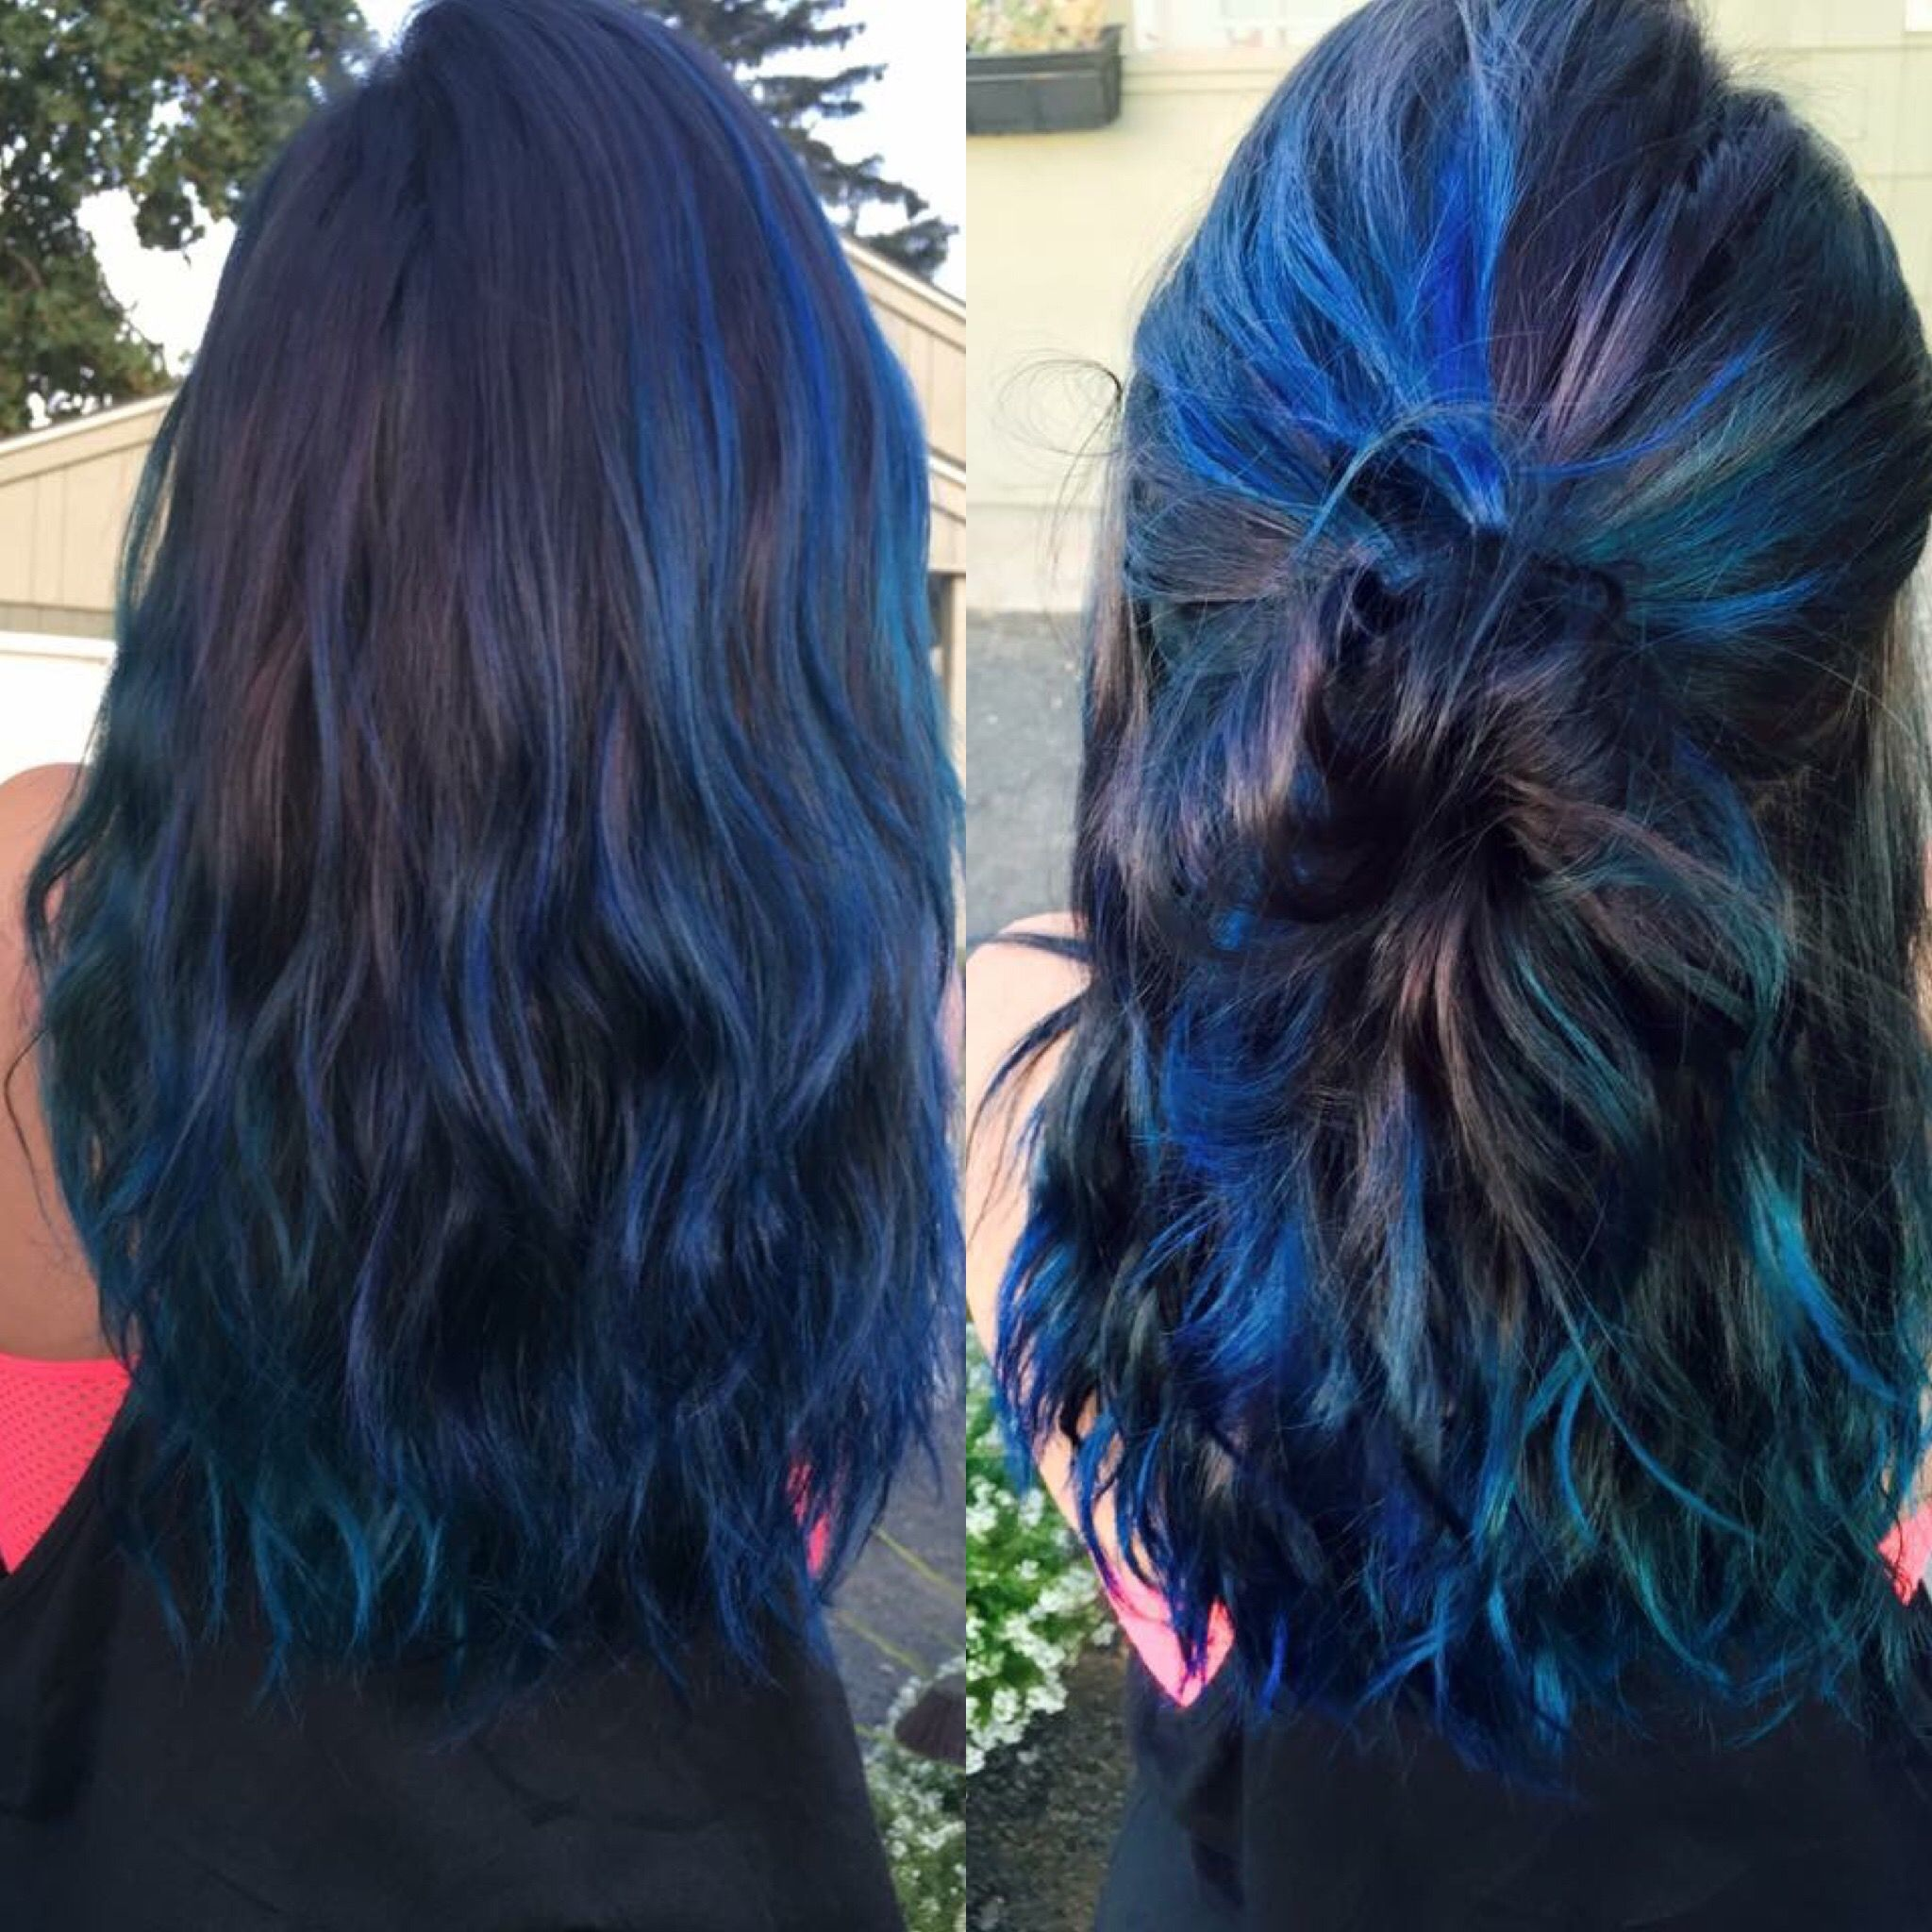 Oil Slick Hair Joico Color Intensity In Peacock Green And